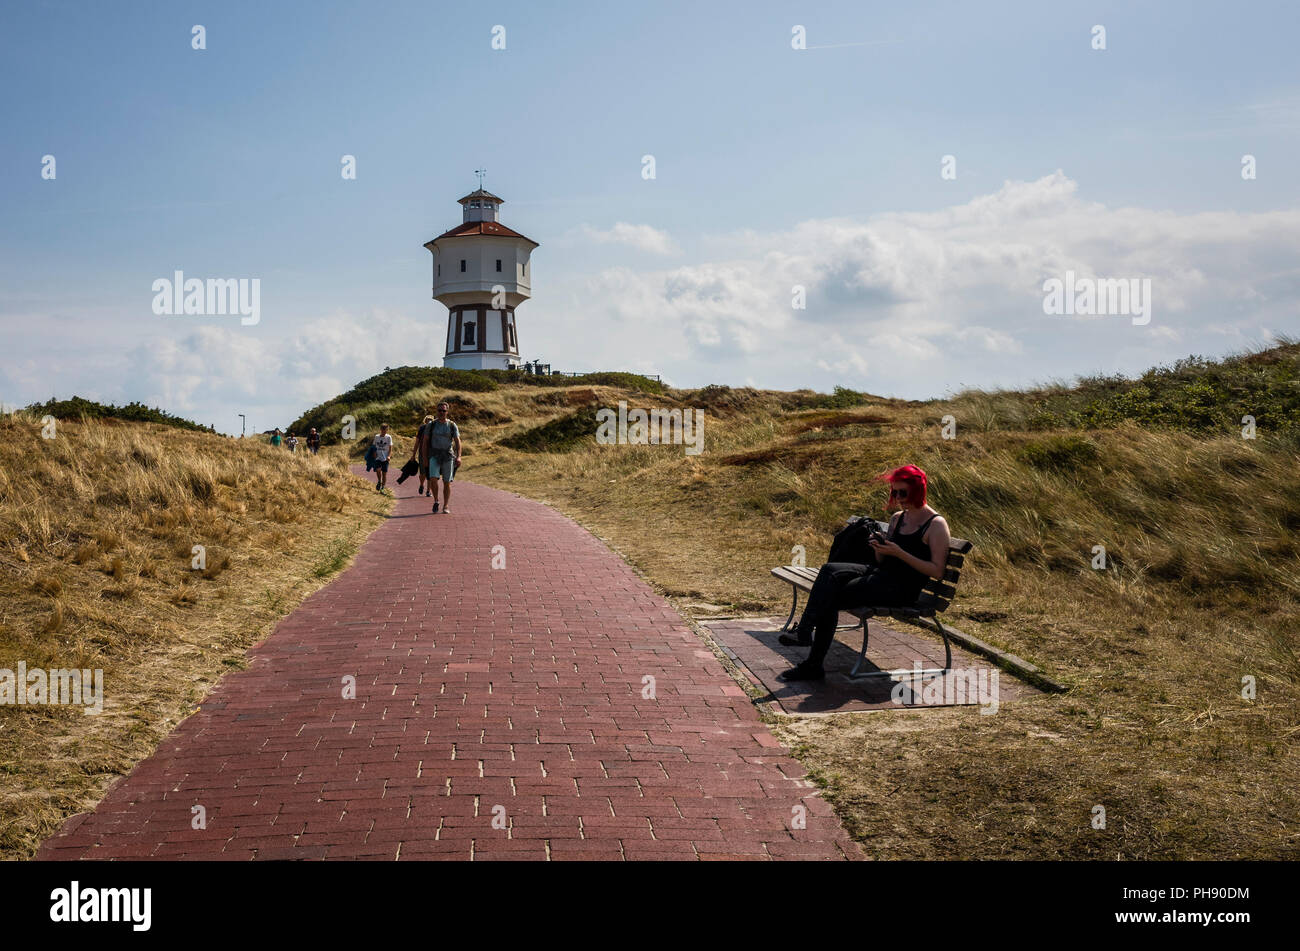 Water Tower, Langeoog. Germany, Deutschland.  A pathway leads towards a tourist attraction, the iconic white water tower - Wasserturm.  A young woman, with red hair, sits on a public  bench to check her mobile phone.  The grass on the sand dunes have been bleached by the sun during the summer's heat wave. - Stock Image